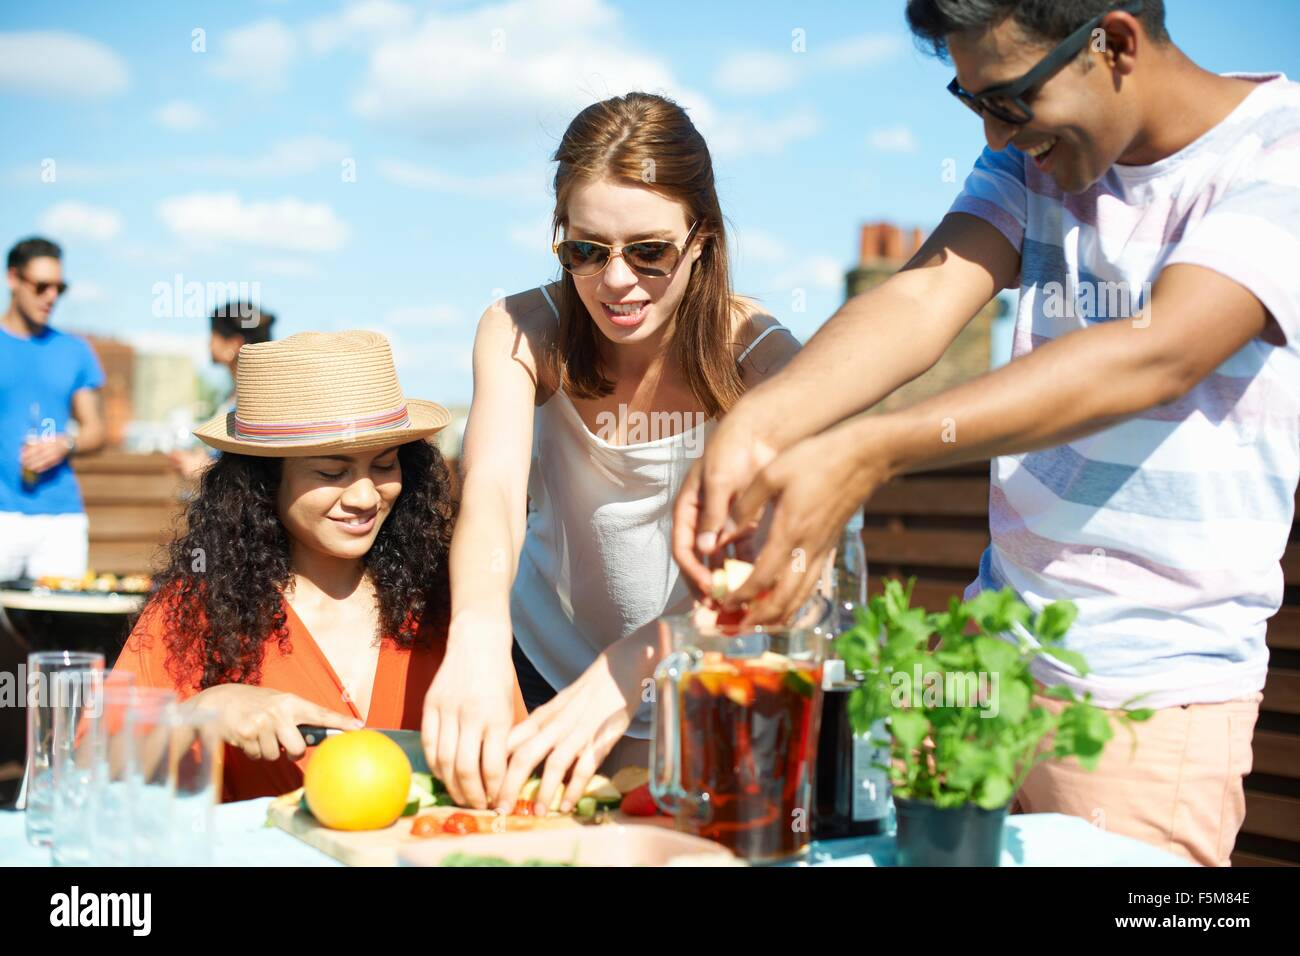 Adult friends preparing fruit for punch cocktail at rooftop party - Stock Image